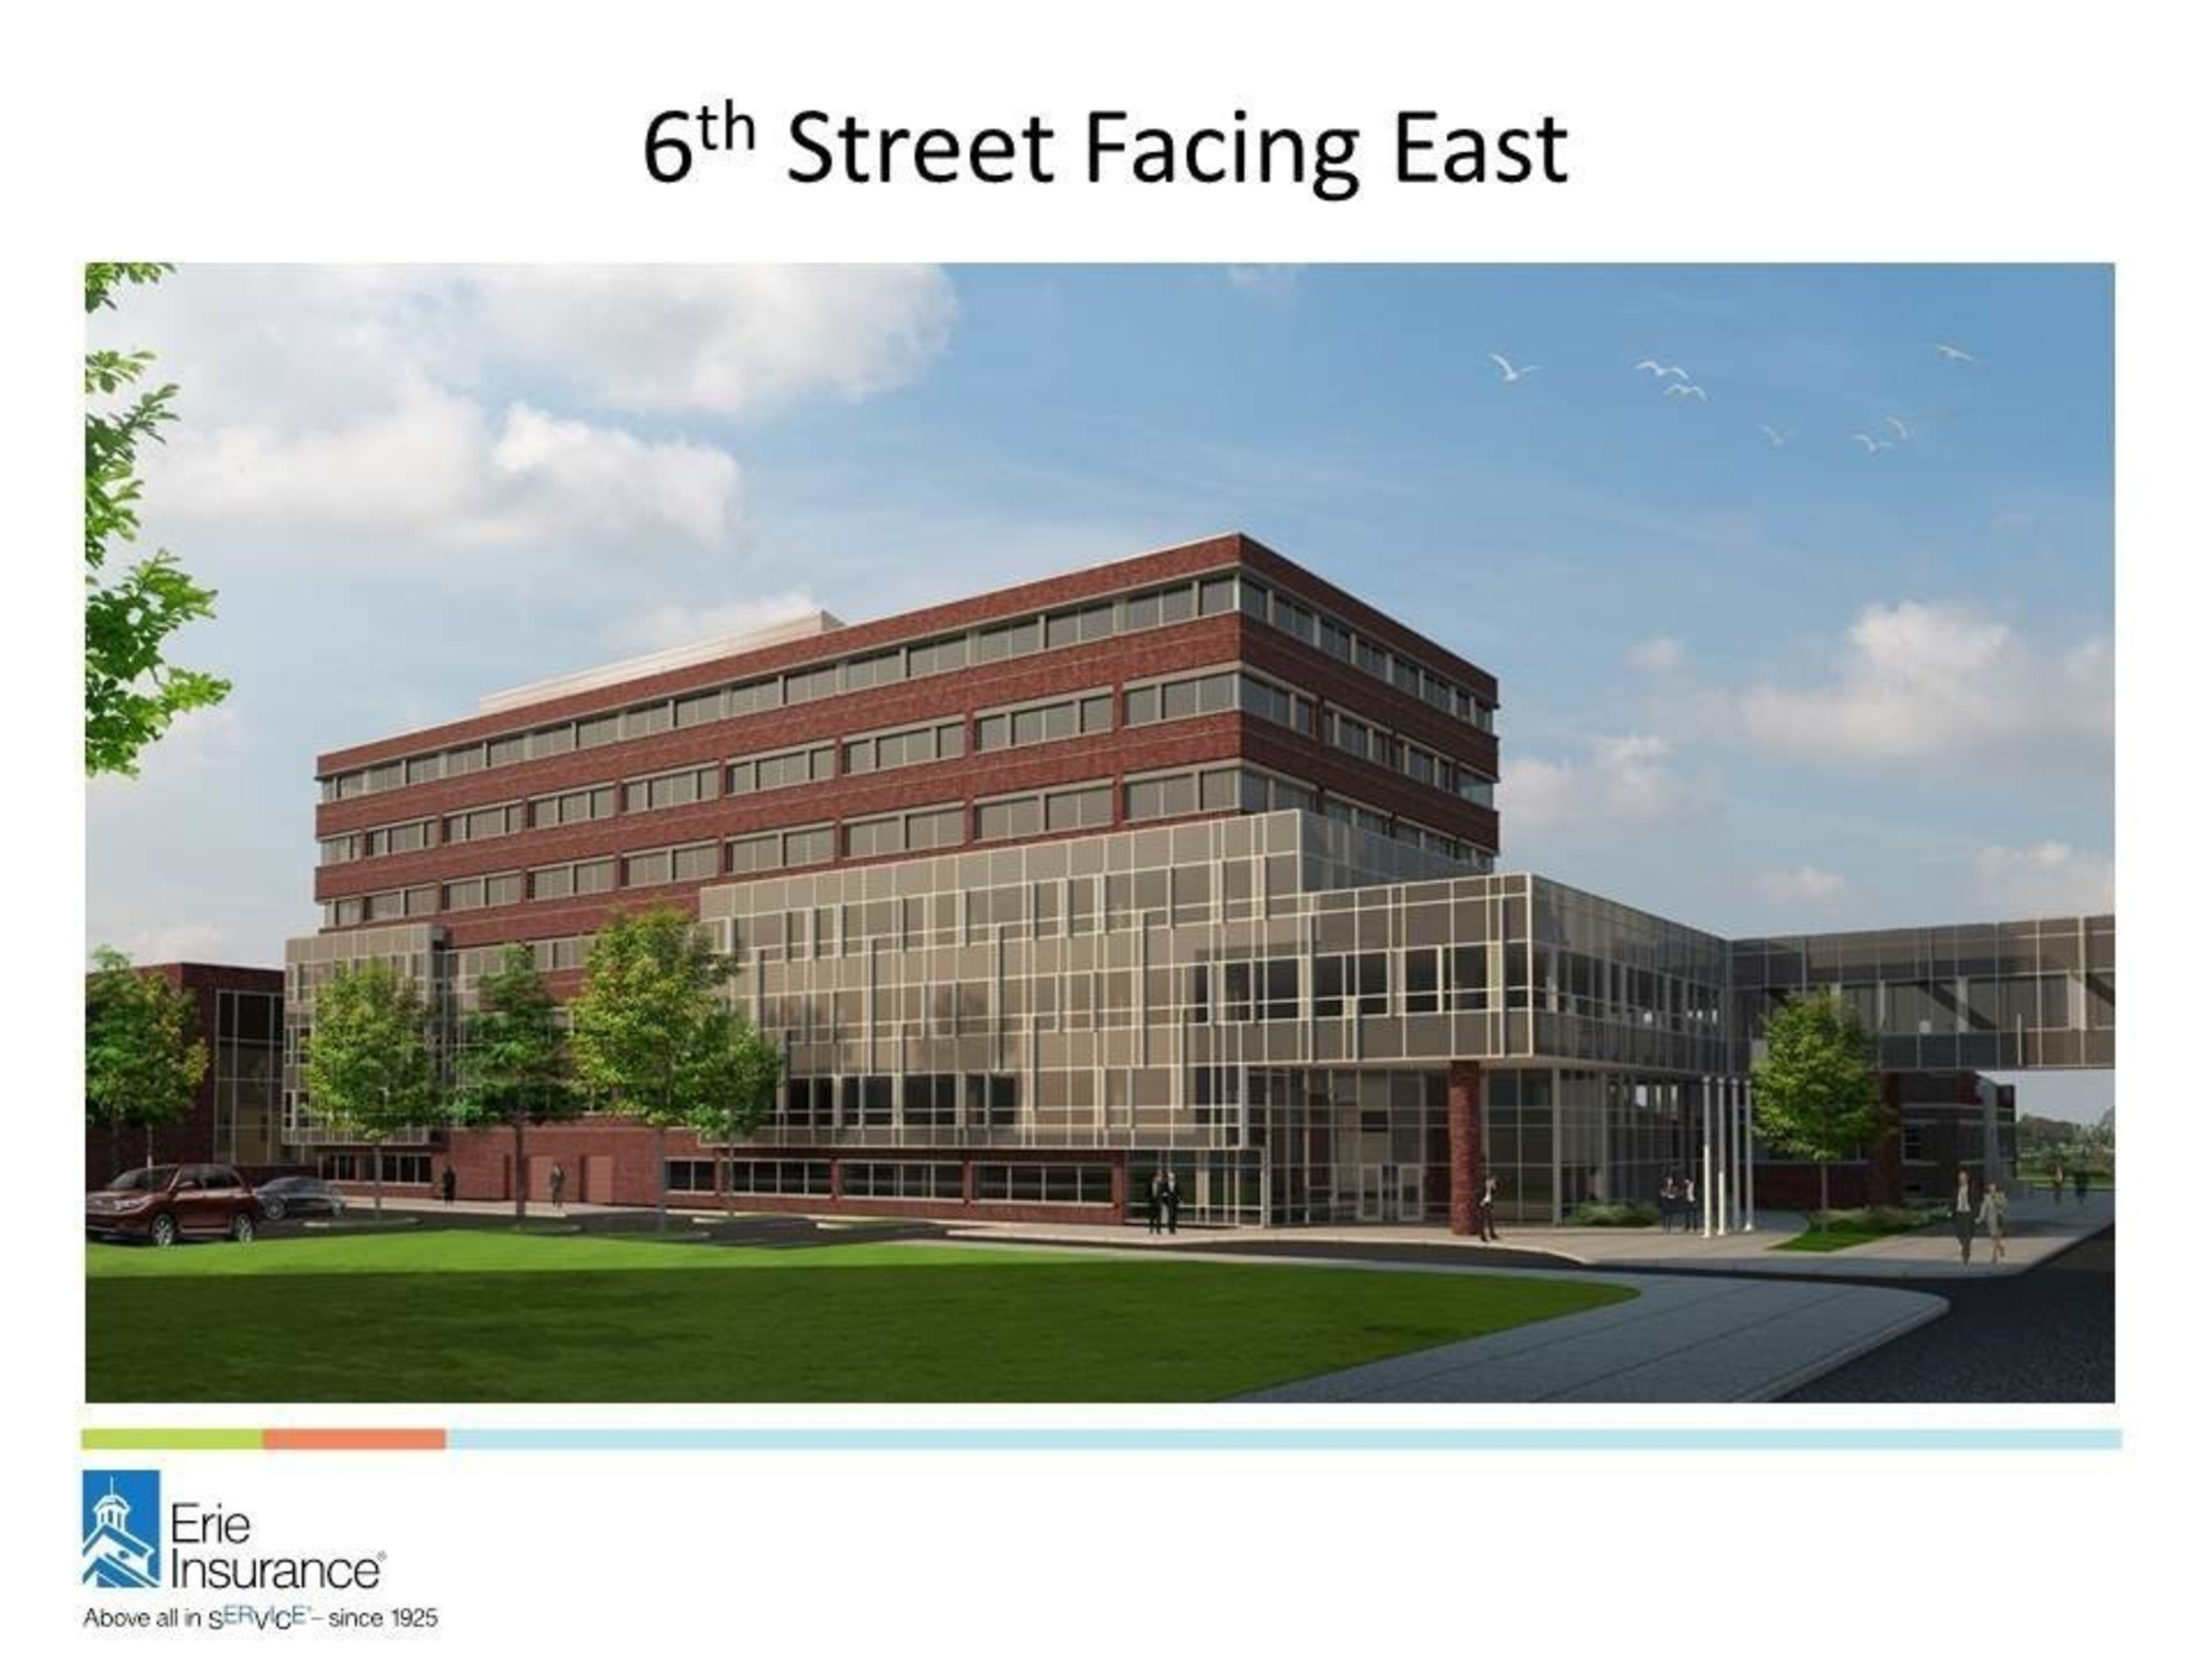 Erie Insurance will build a new office building on its existing home office campus in downtown Erie, Pa. Construction is expected to begin in spring 2017, and last about three years.